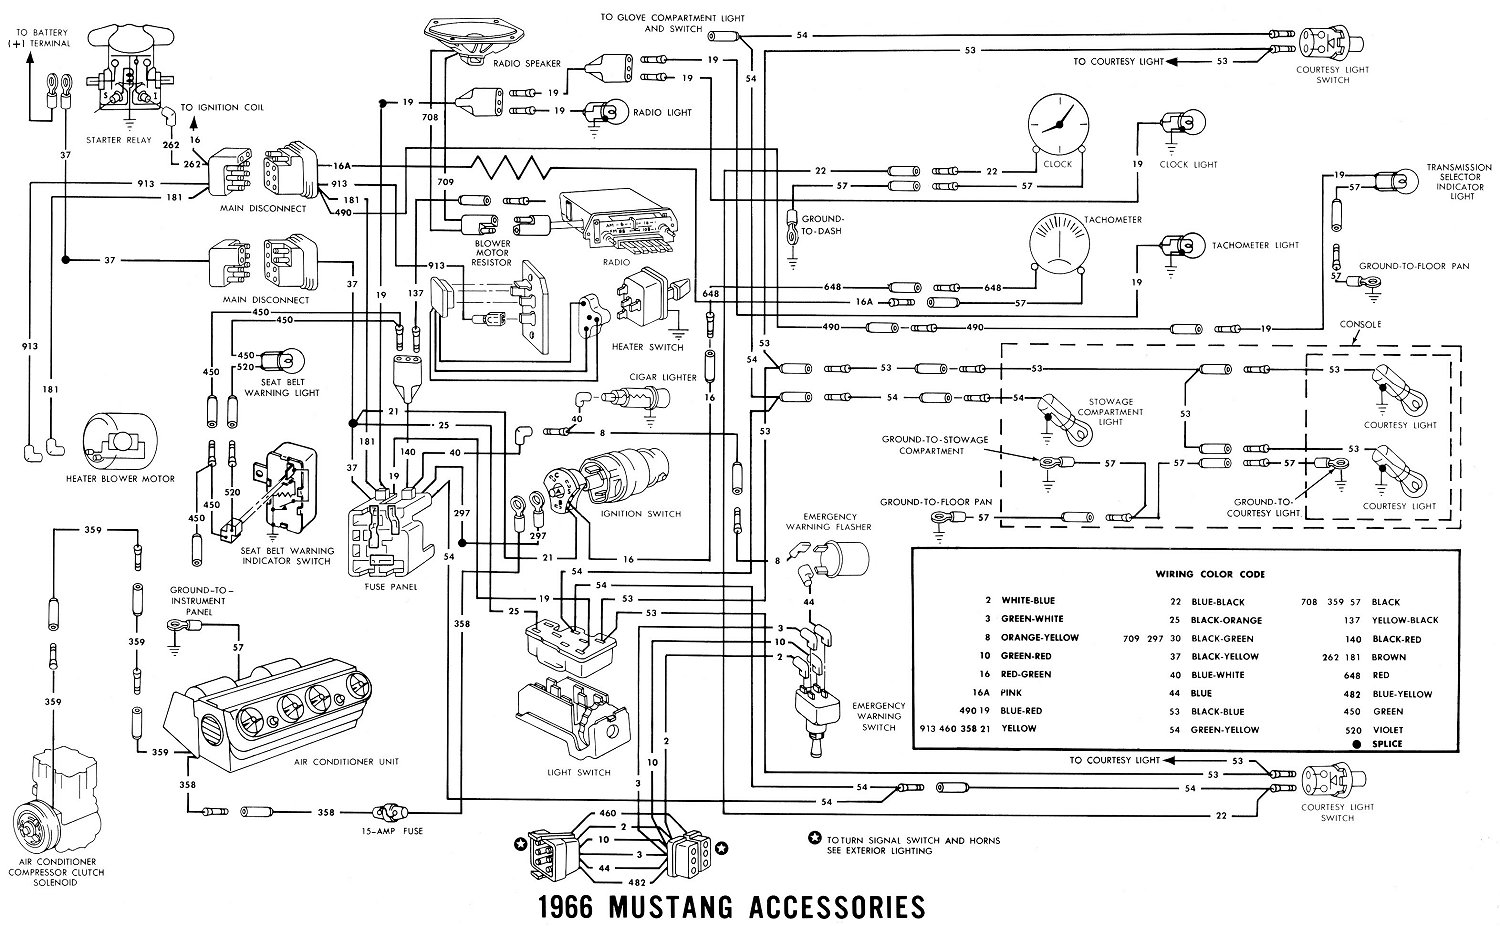 mustang ii wiring diagram cluster example electrical wiring diagram u2022 rh olkha co 1965 Mustang Wiring Harness Diagram 1965 Mustang Dash Wiring Diagram